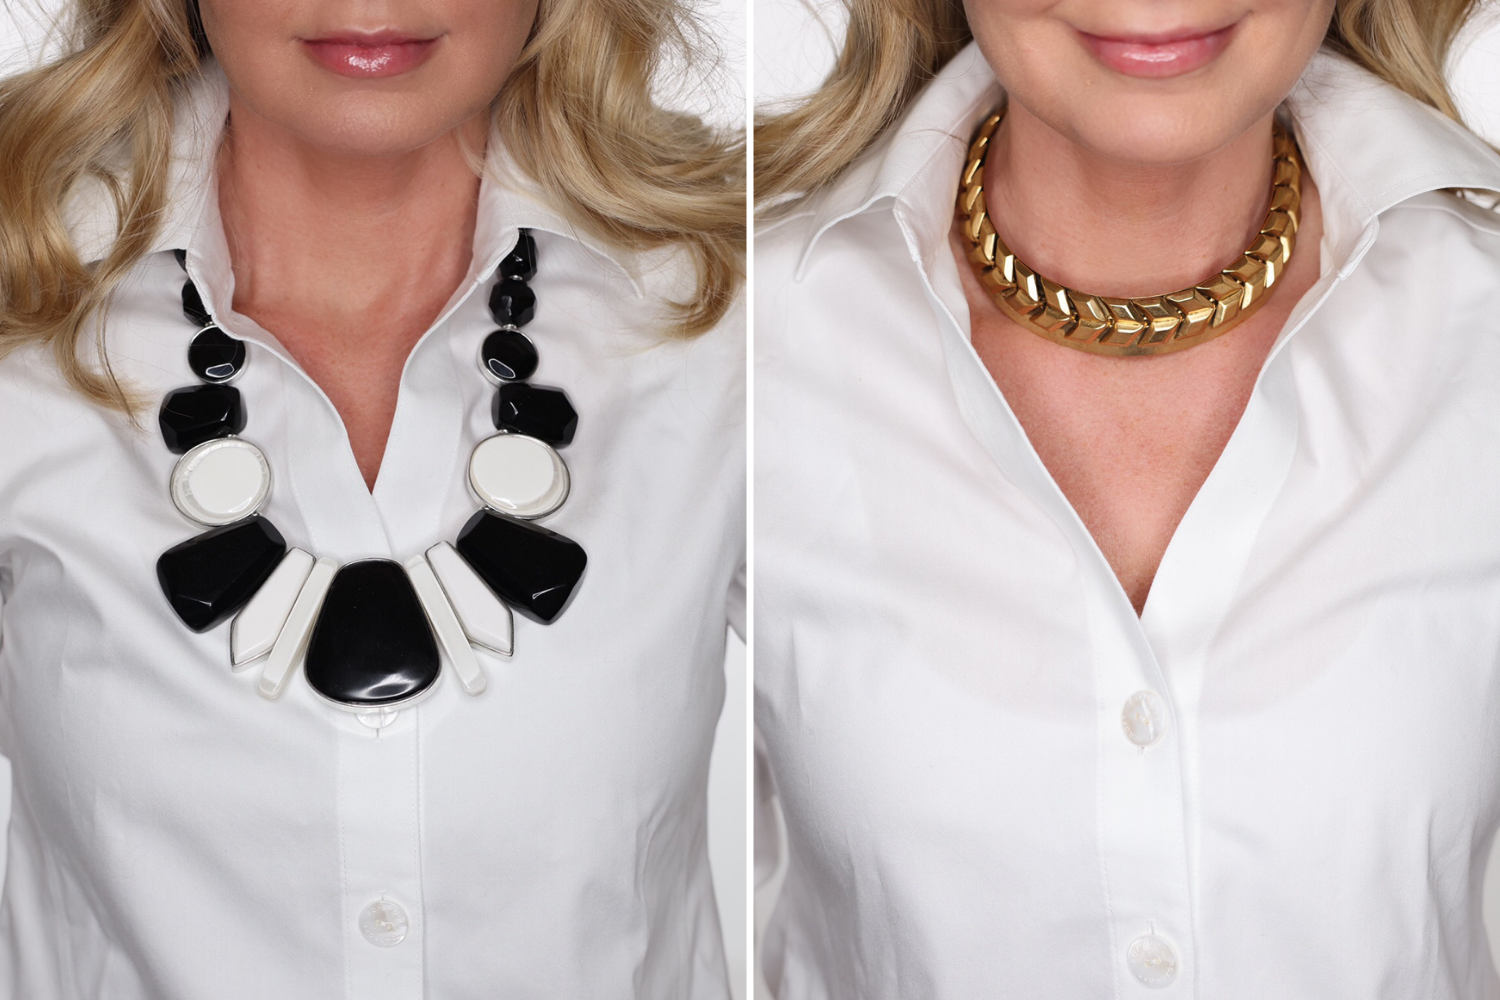 How To Look Younger, Erin Busbee of Busbee in a before and after wearing a black and white bold necklace on the left and a chic gold collar necklace on the right